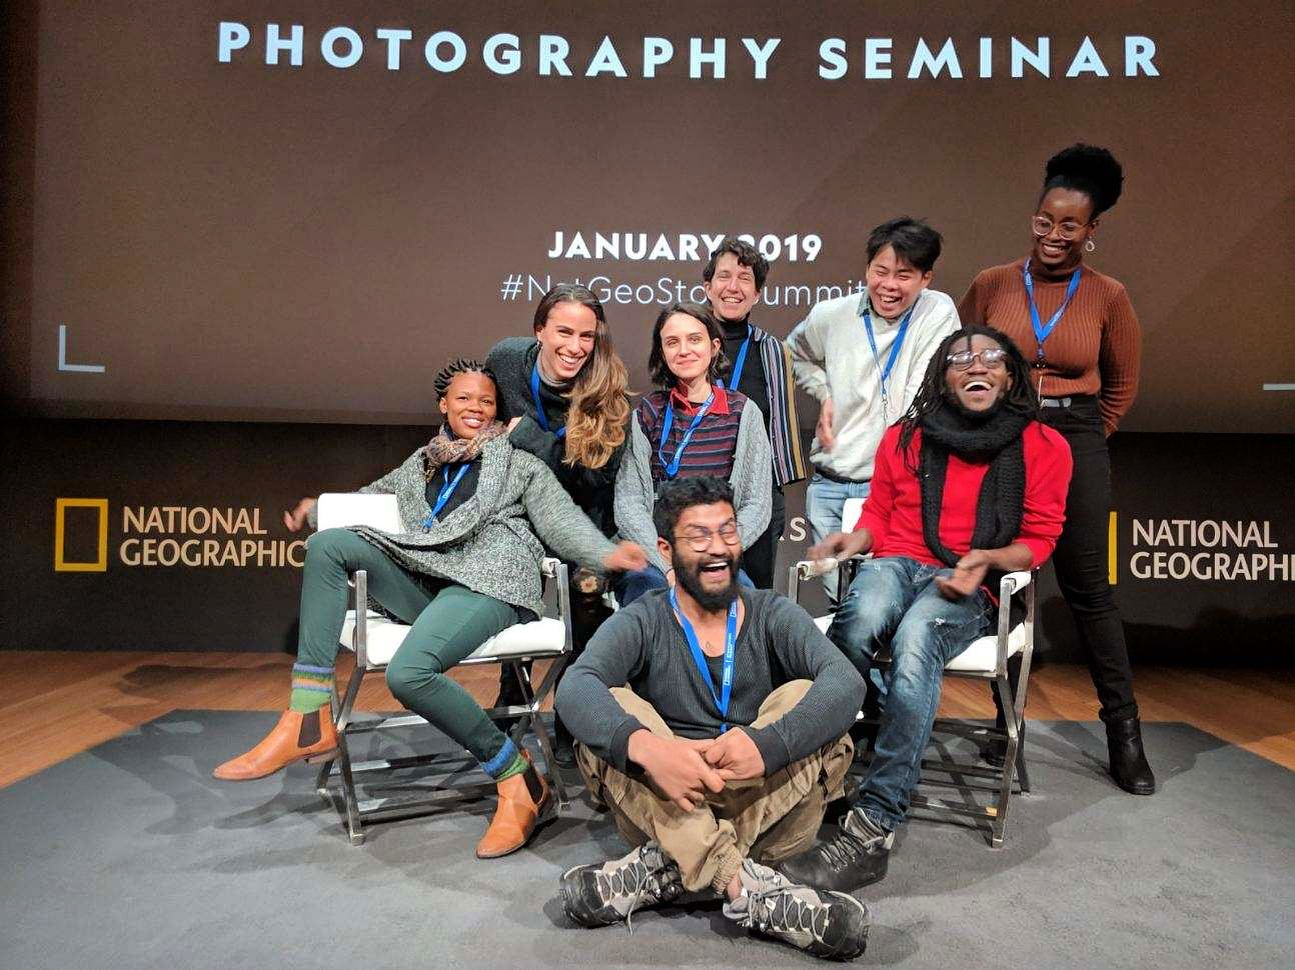 Fellows at the National Geographic Summit